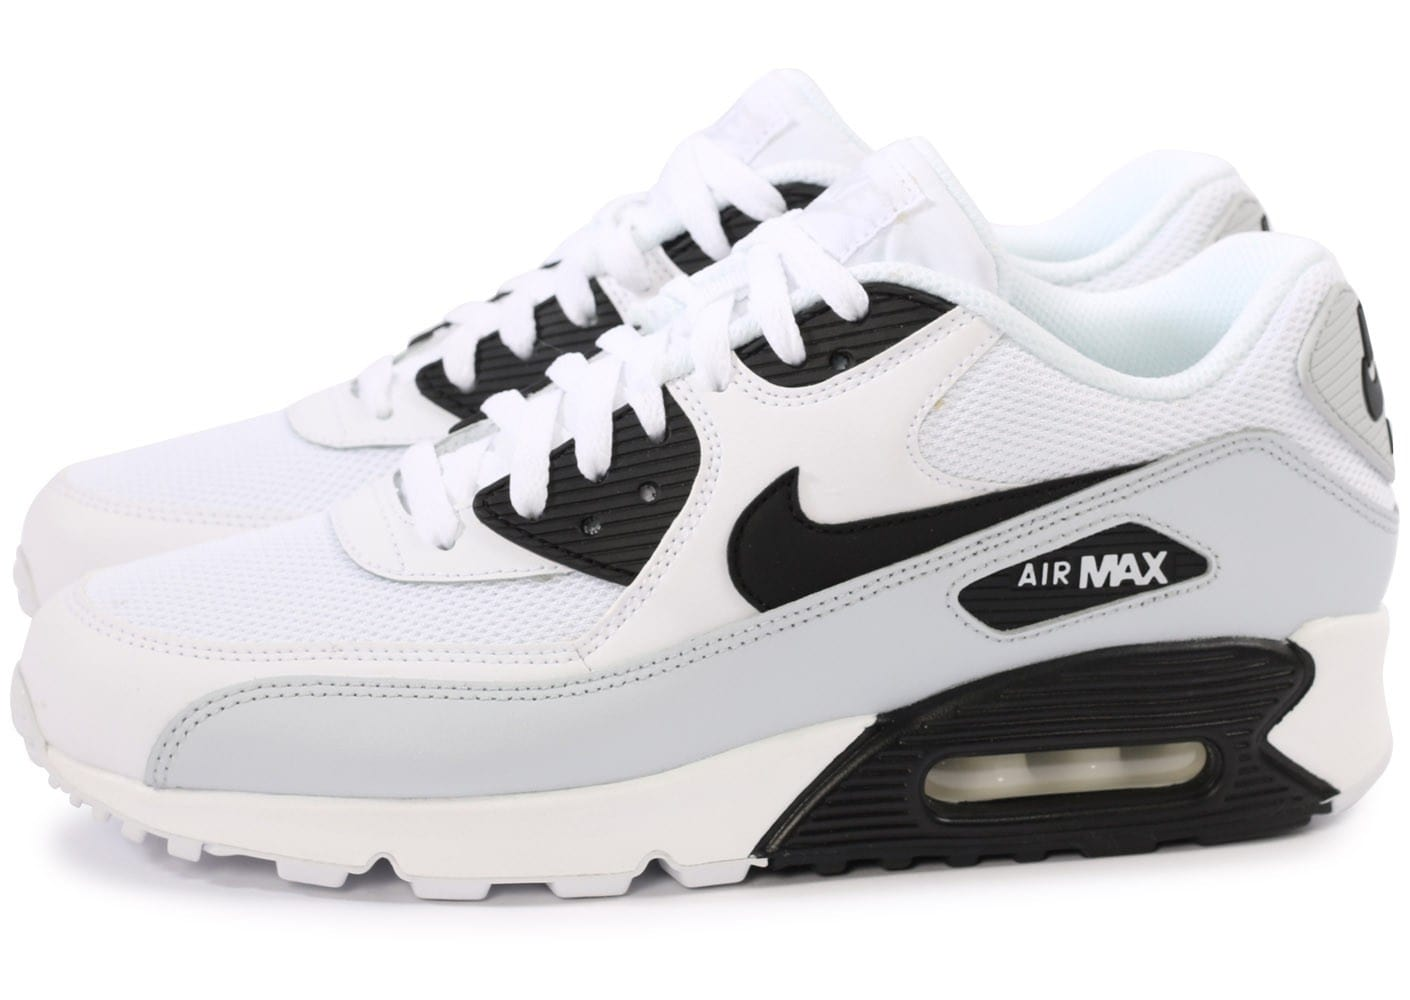 nike air max 90 essential blanc et noir chaussures homme chausport. Black Bedroom Furniture Sets. Home Design Ideas